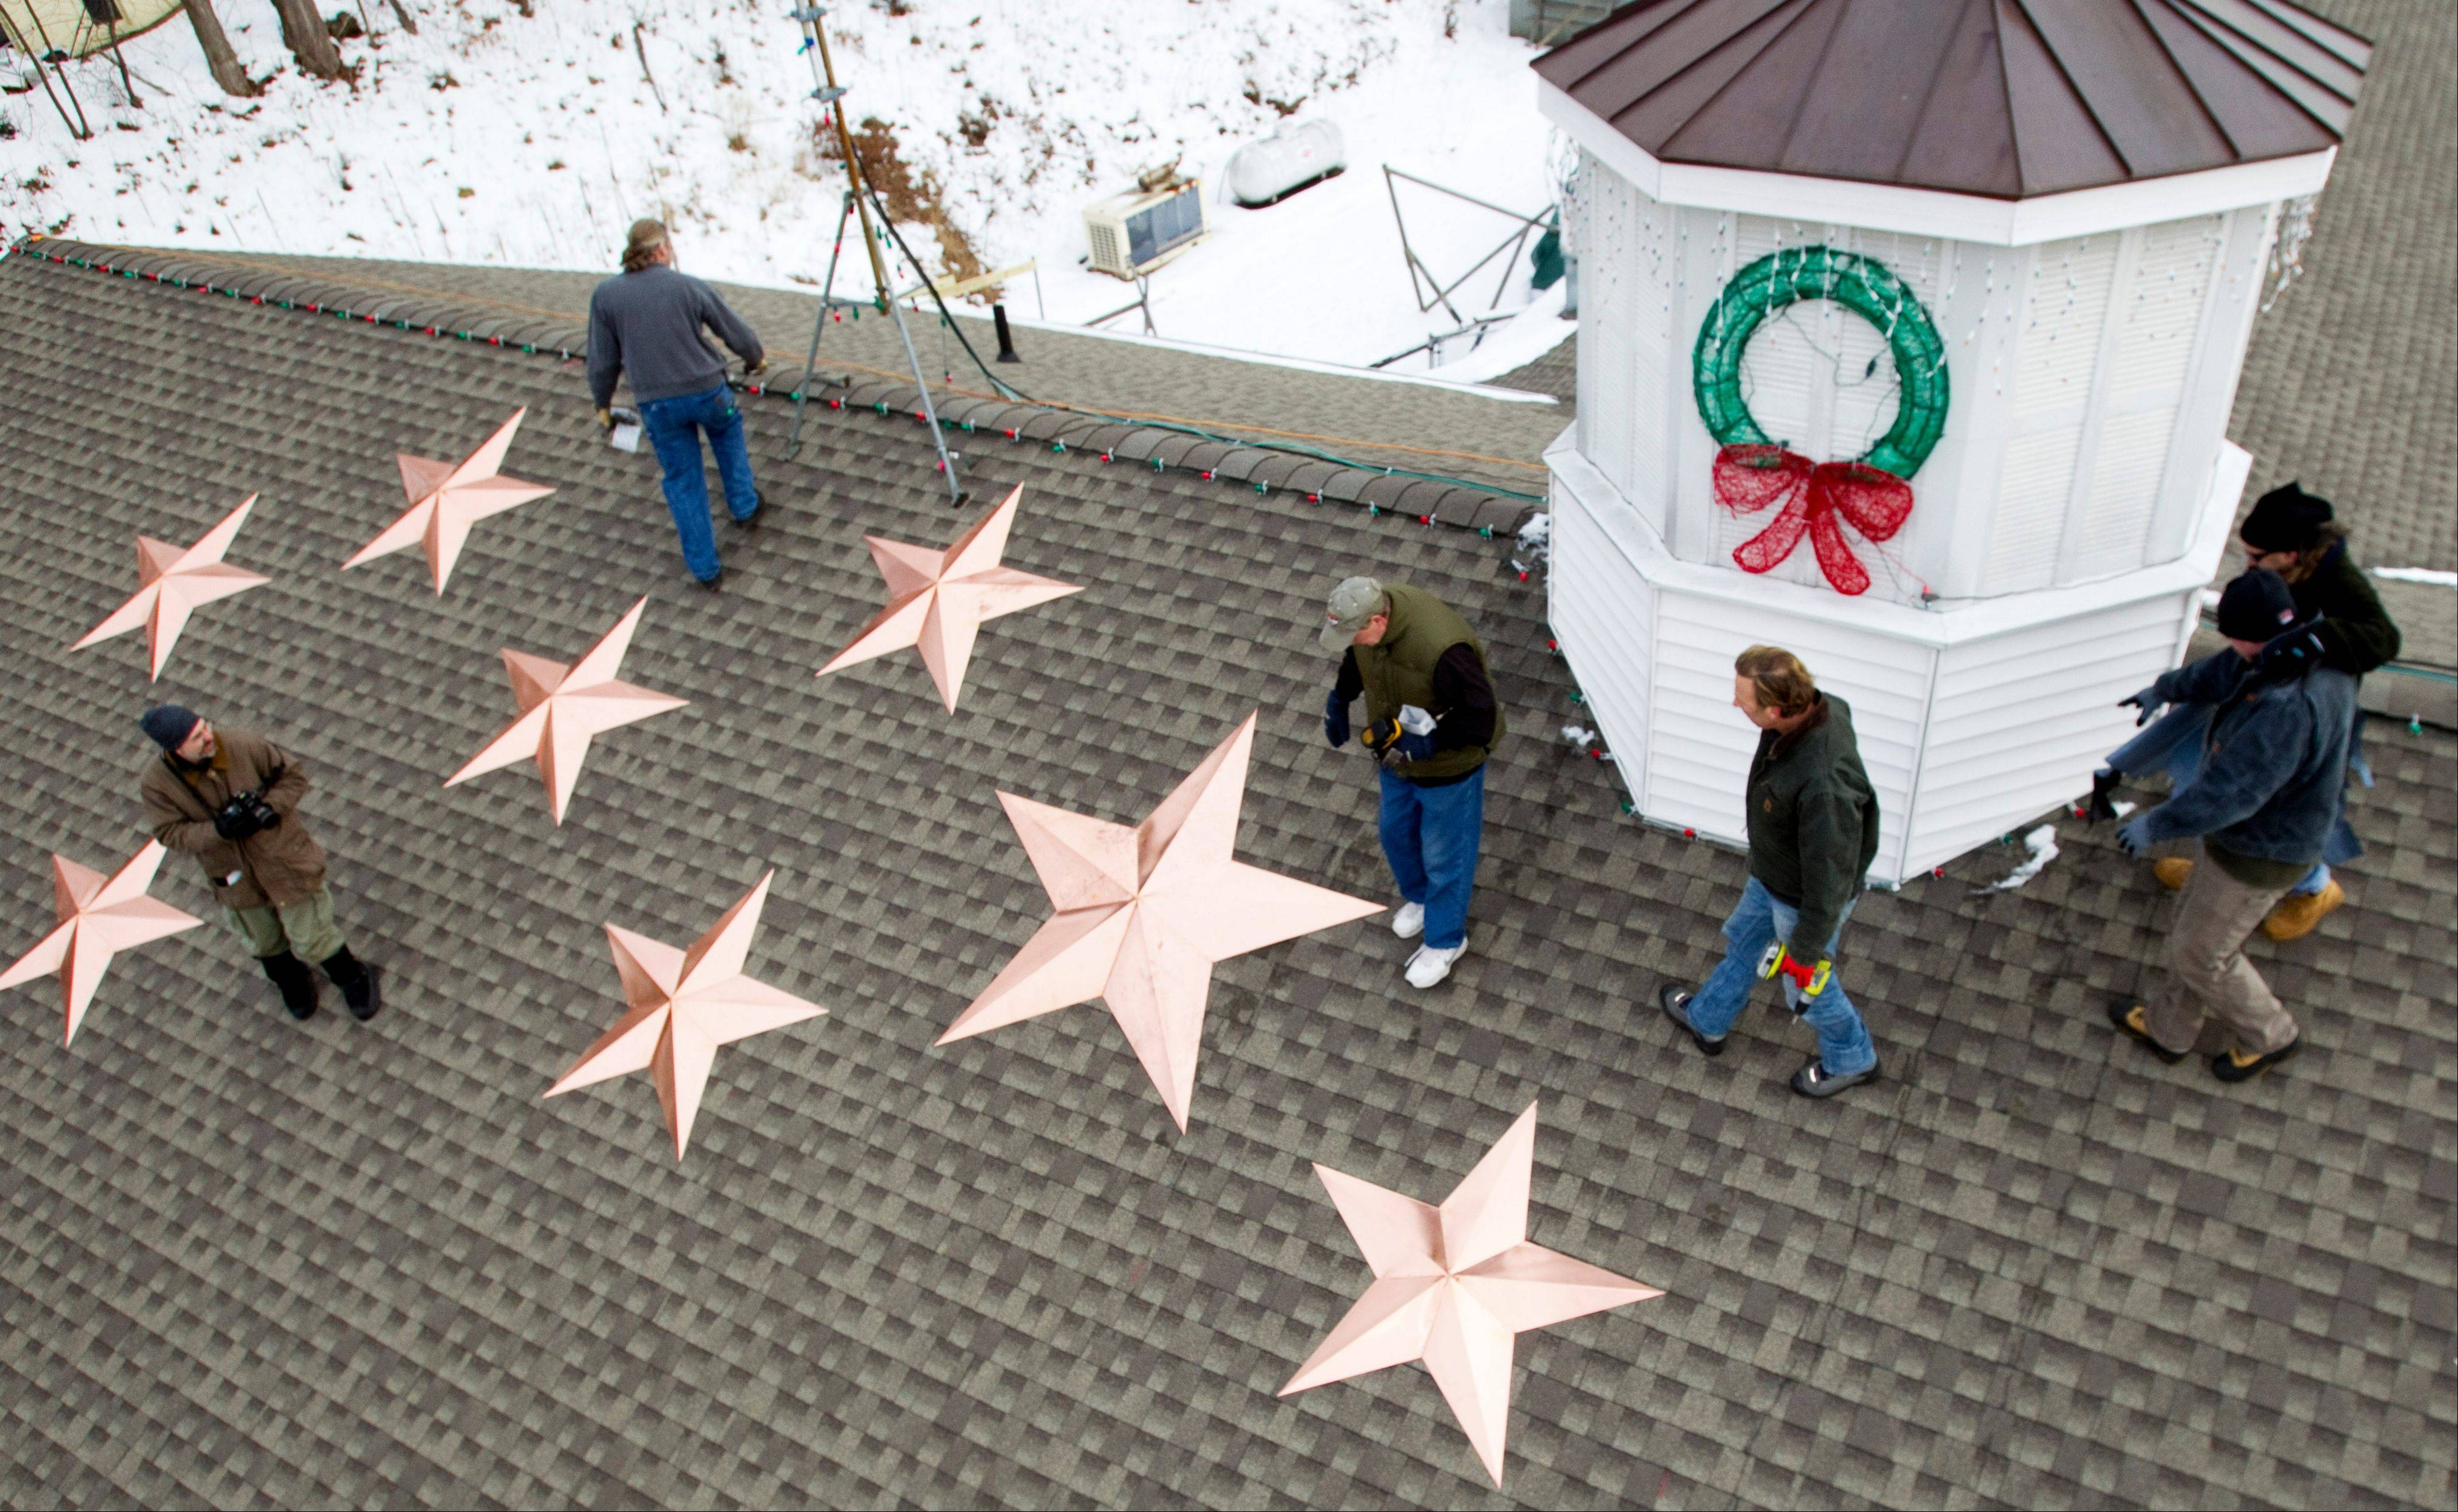 People work on the installation of 26 stars on the roof of the Sandy Hook fire station Tuesday in Newtown, Conn. The stars were made and installed by a group of local contractors, led by Greg Gnandt, to honor the memory of the victims of the Sandy Hook school shooting.